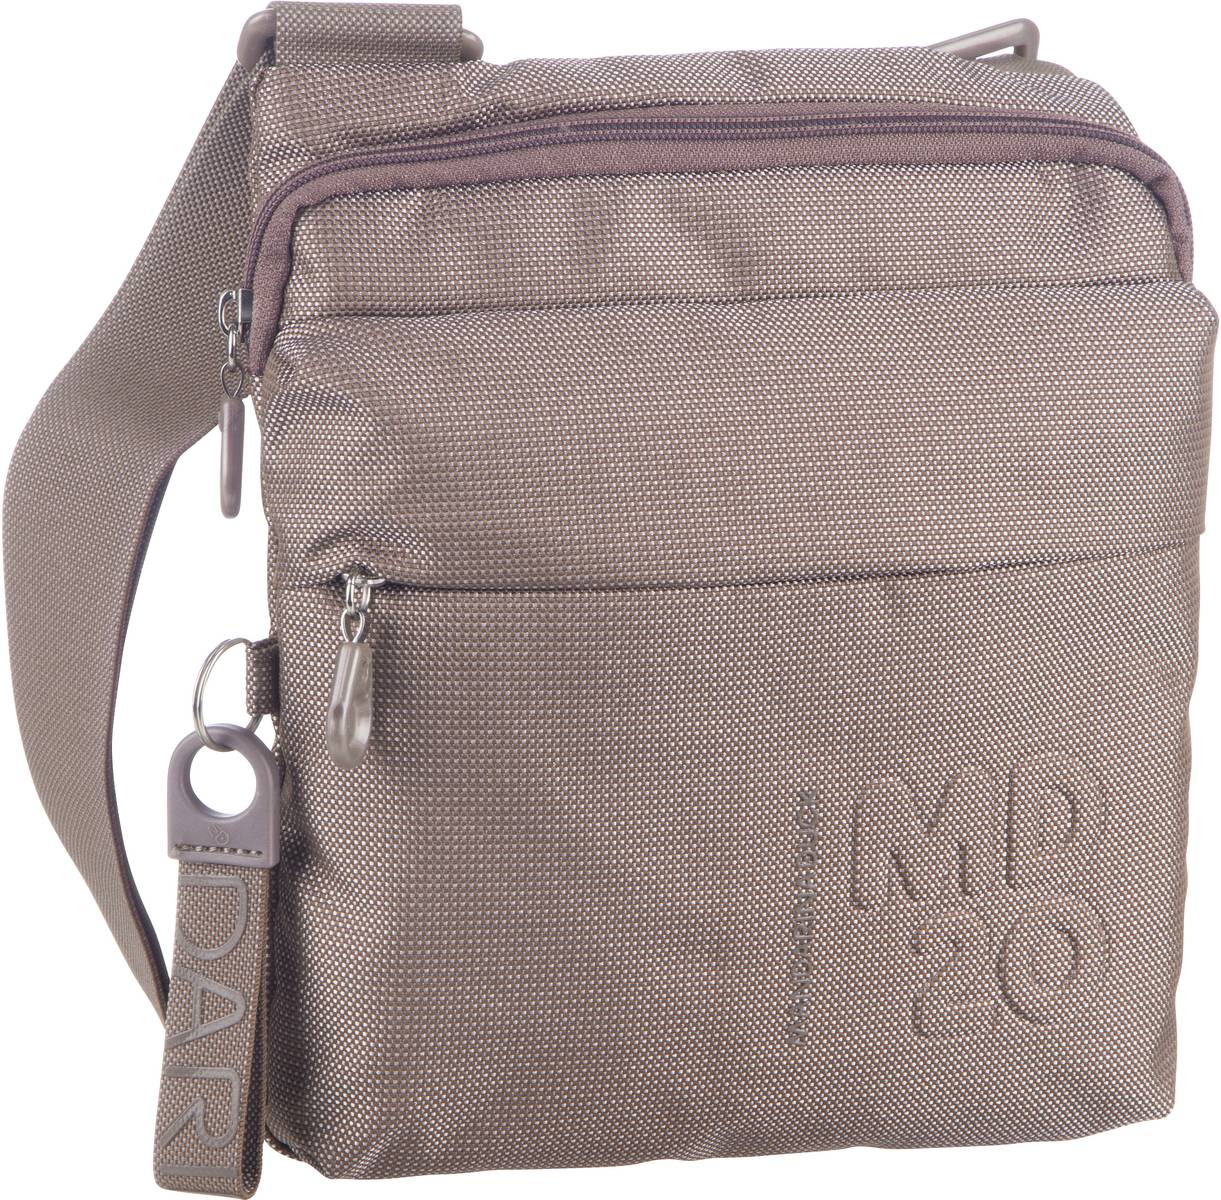 Umhängetasche MD20 Small Crossover Bag QMT04 Taupe